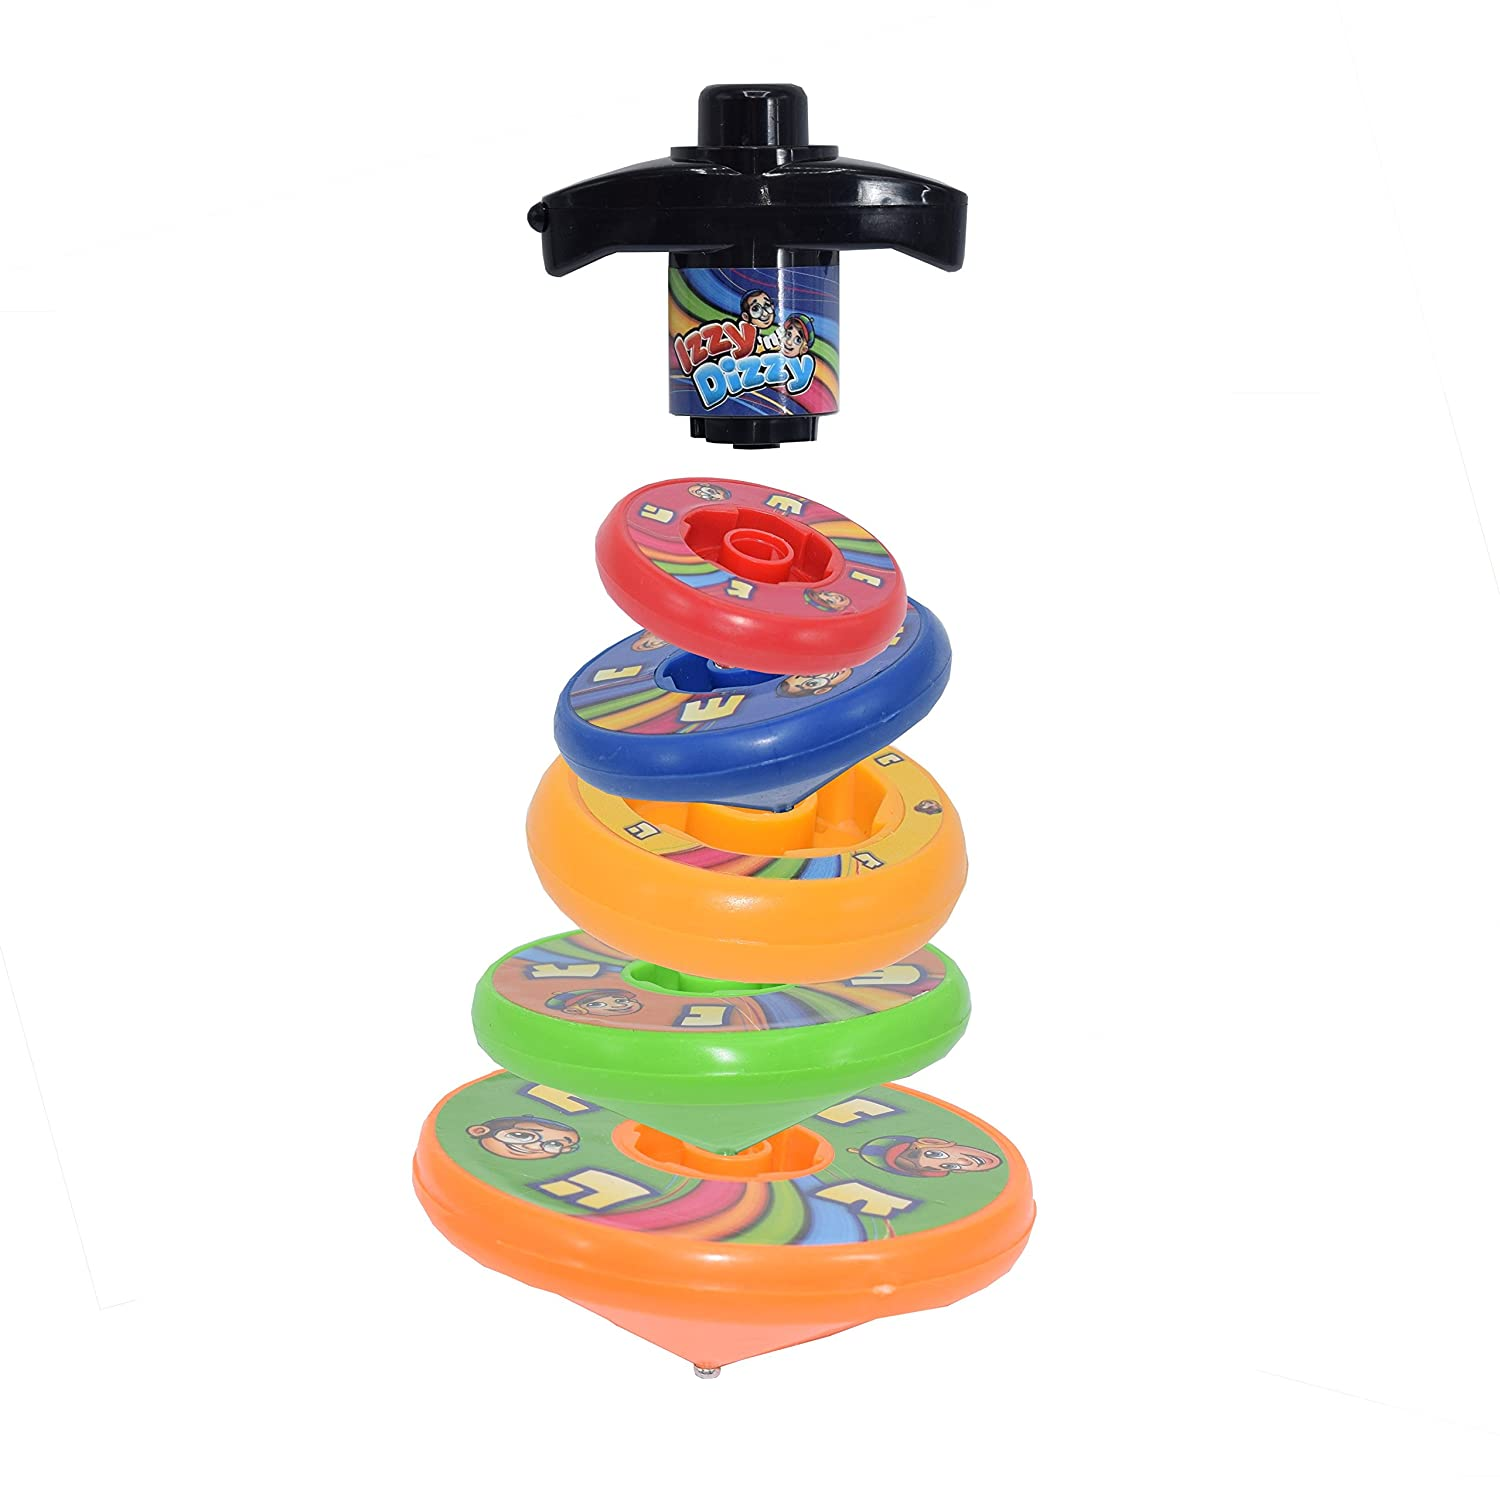 Wind and Release Games by Izzy /'n/' Dizzy Hanukah Toys 5 Layer Stackable Dreidel Spin Individually or On Top of Each Other